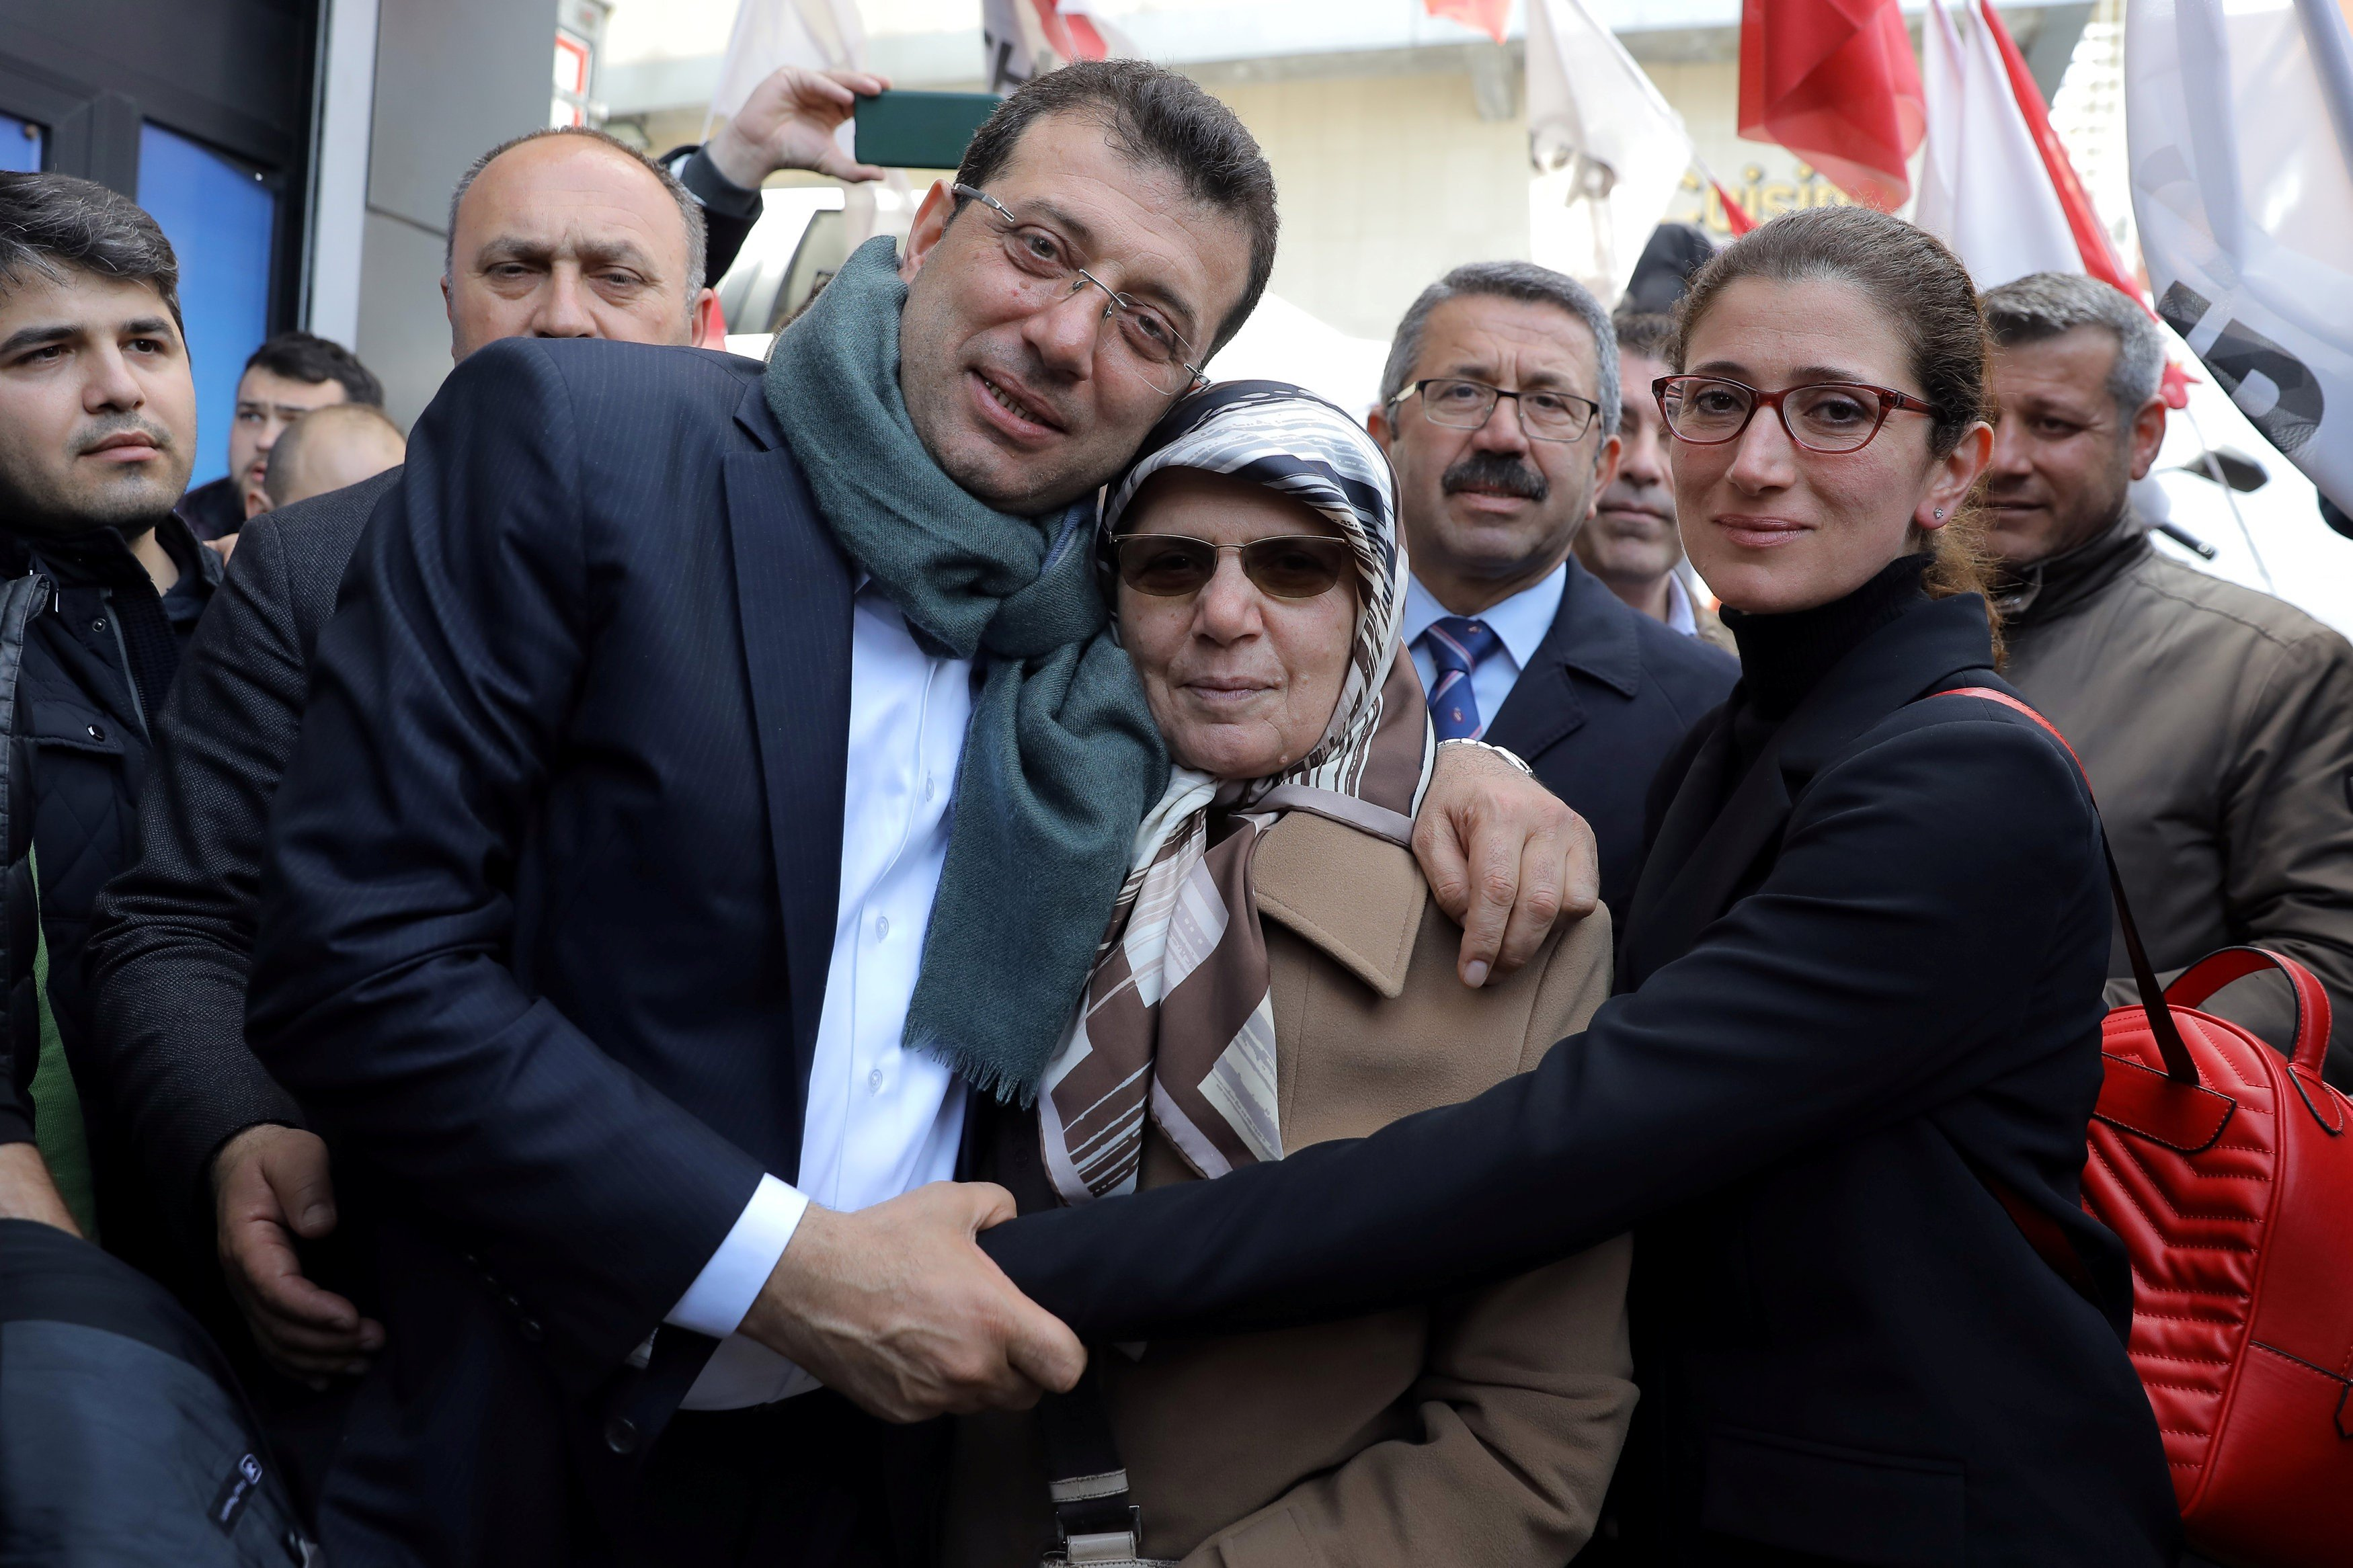 Ekrem Imamoglu, main opposition Republican People's Party (CHP) candidate for mayor of Istanbul, poses with his mother Hava Imamoglu and his sister in Istanbul, Turkey 1 April (REUTERS)